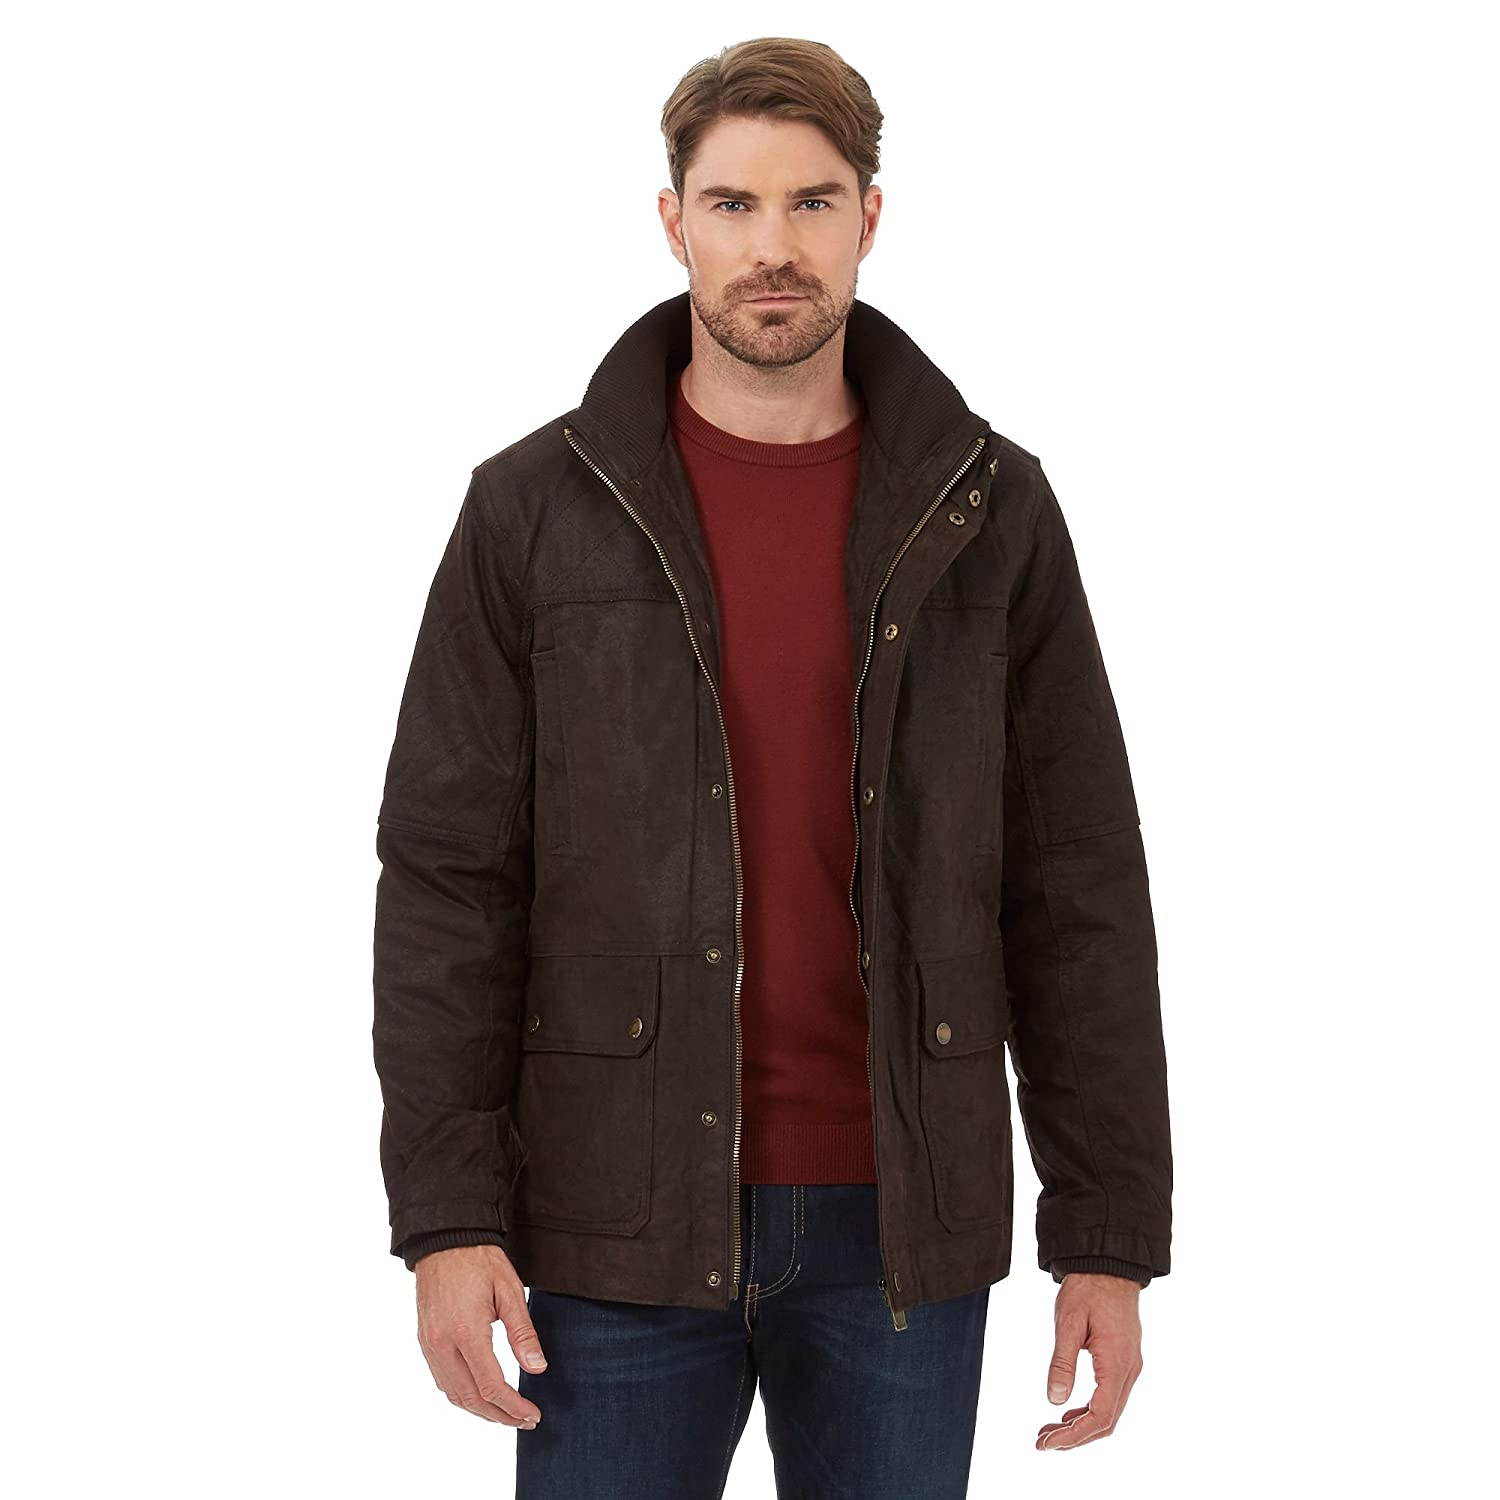 Barneys Mens Dark Brown Leather Jacket